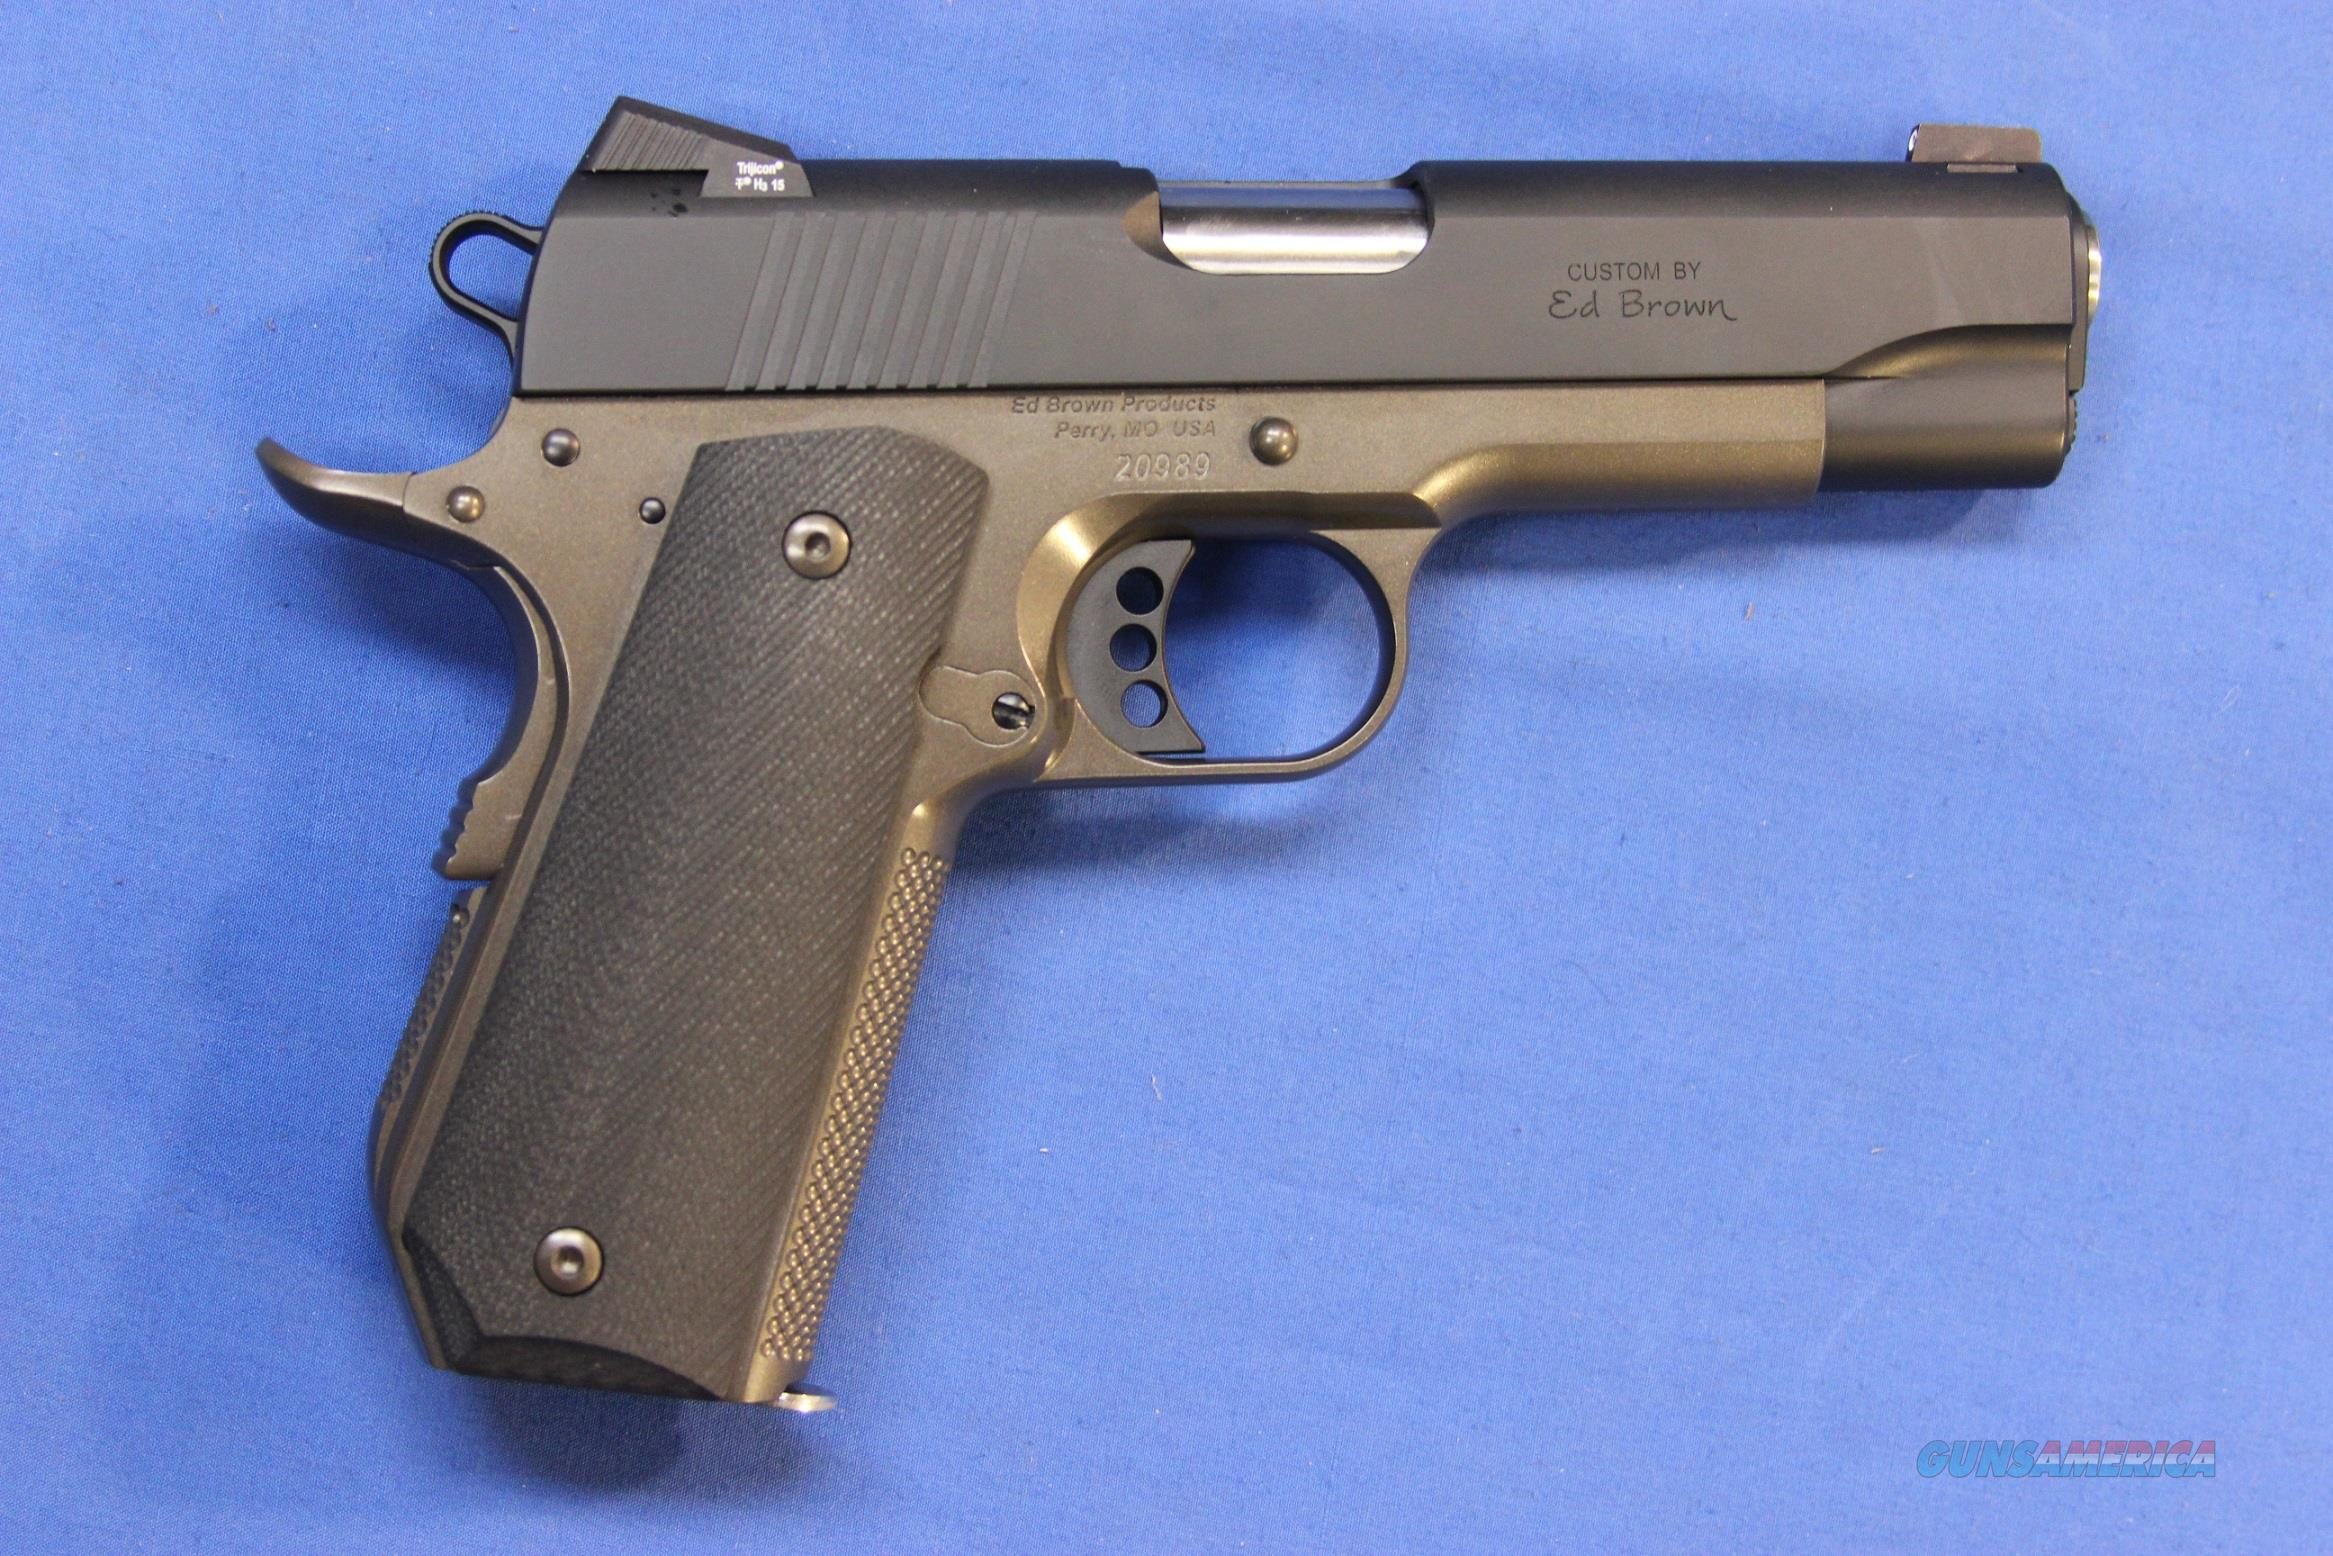 ED BROWN SPECIAL FORCES CARRY .45 ACP BATTLE  BRONZE - NEW!  Guns > Pistols > Ed Brown Pistols